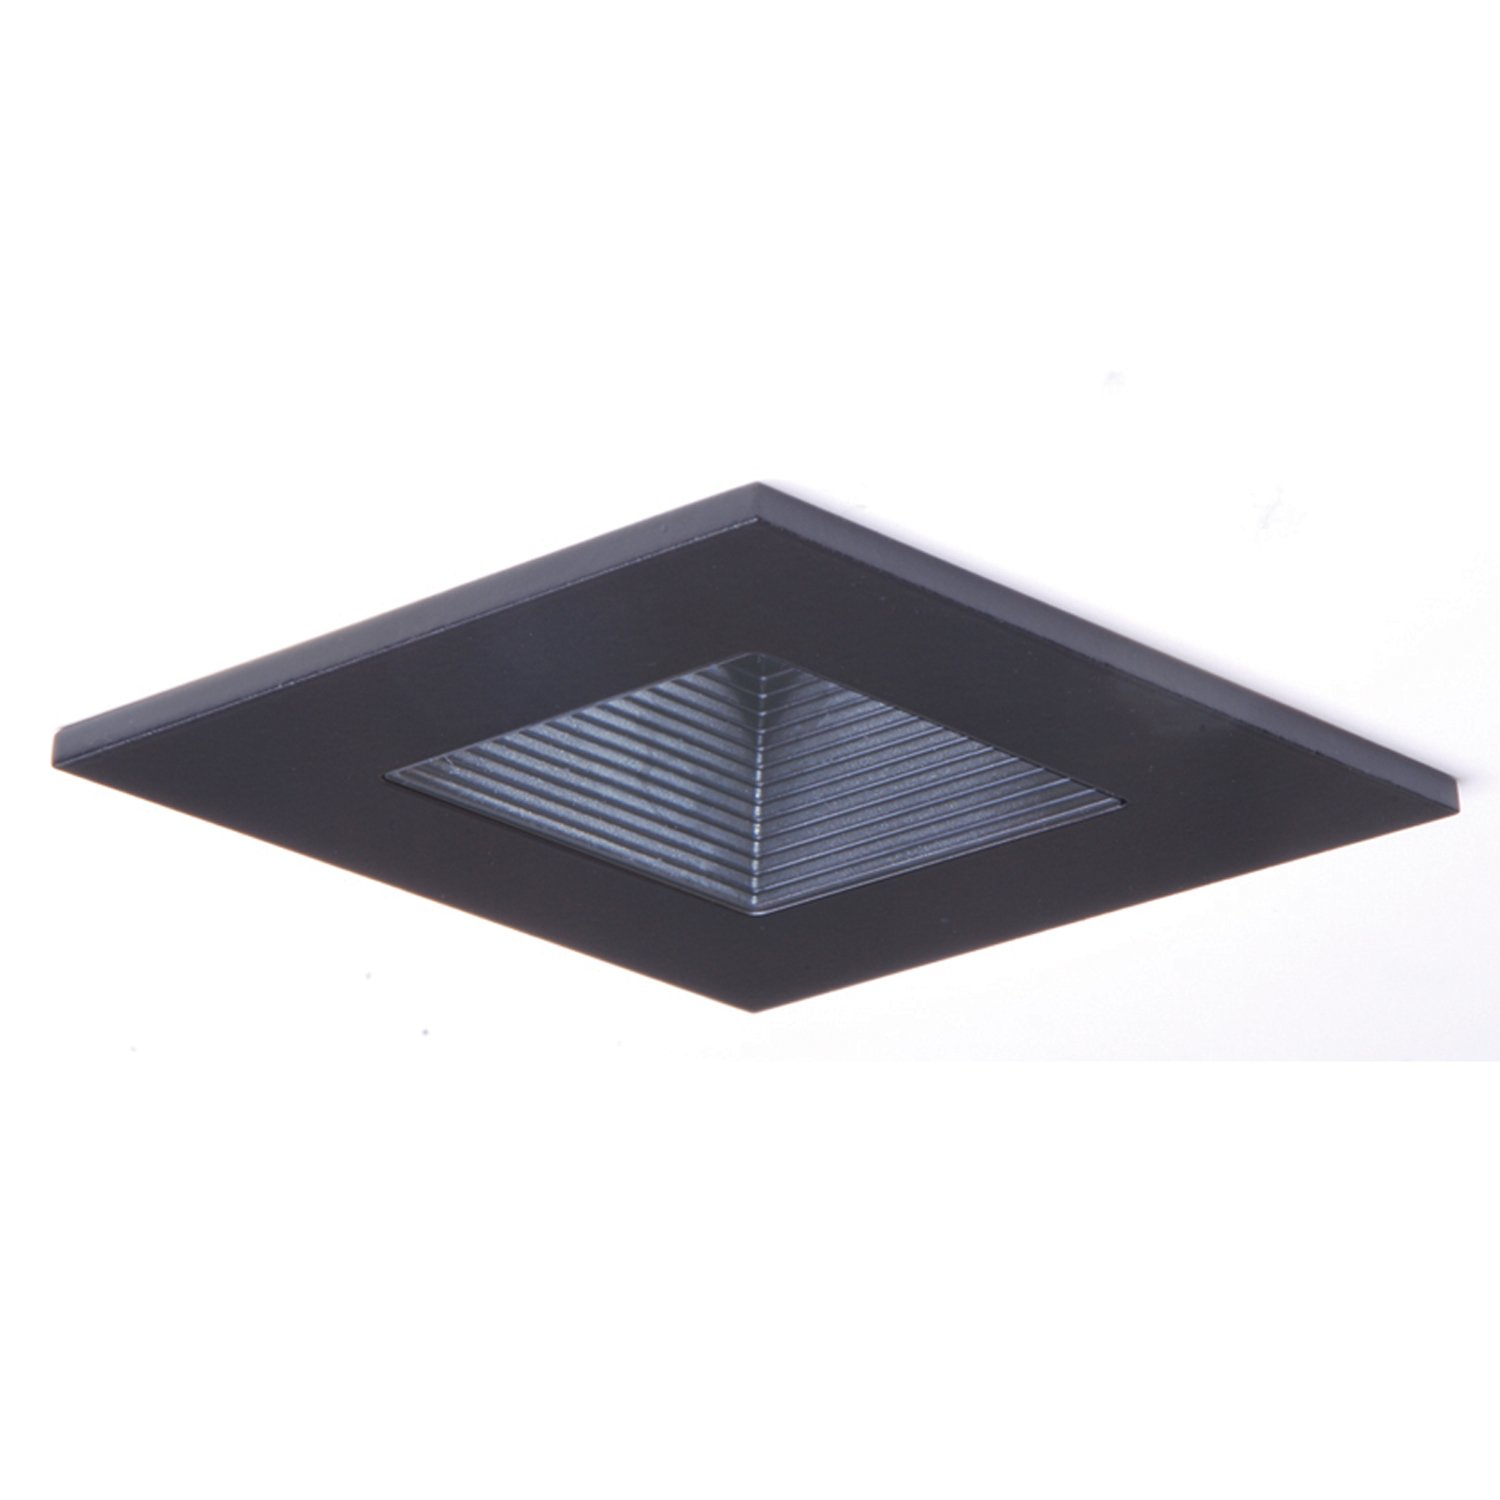 HALO Recessed 3012BKBB 3-Inch 15-Degree Trim Lensed Square Shower Light with Baffle, Black